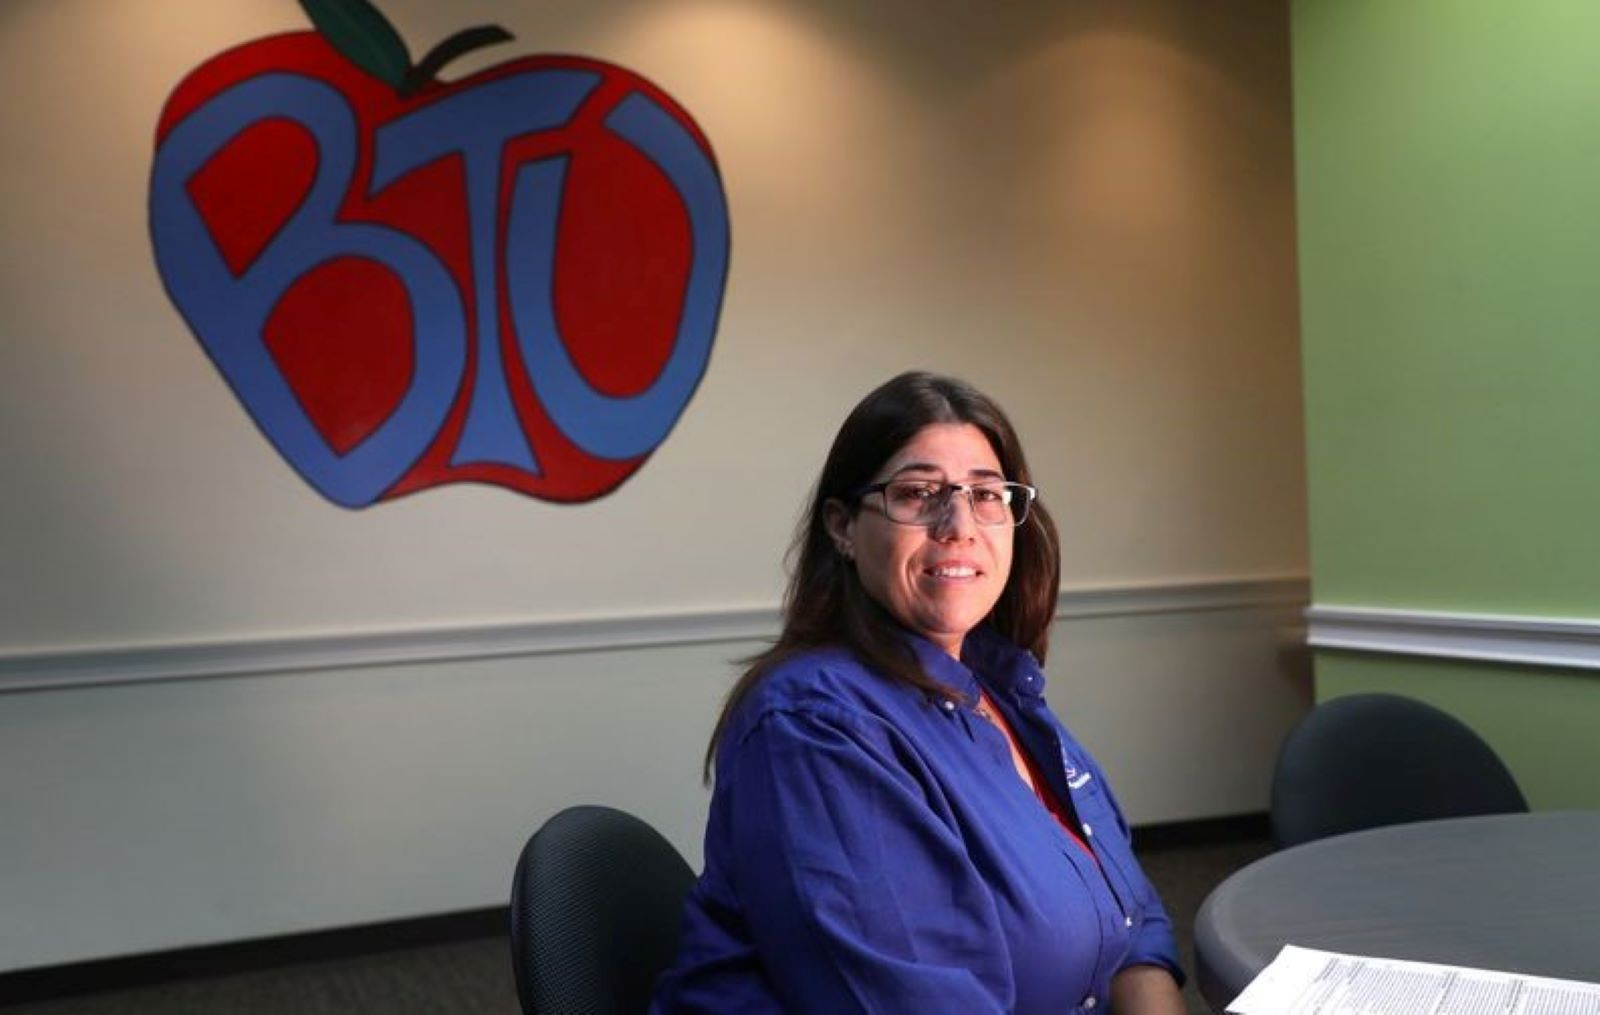 Ana Fusco, Broward Teachers Union President